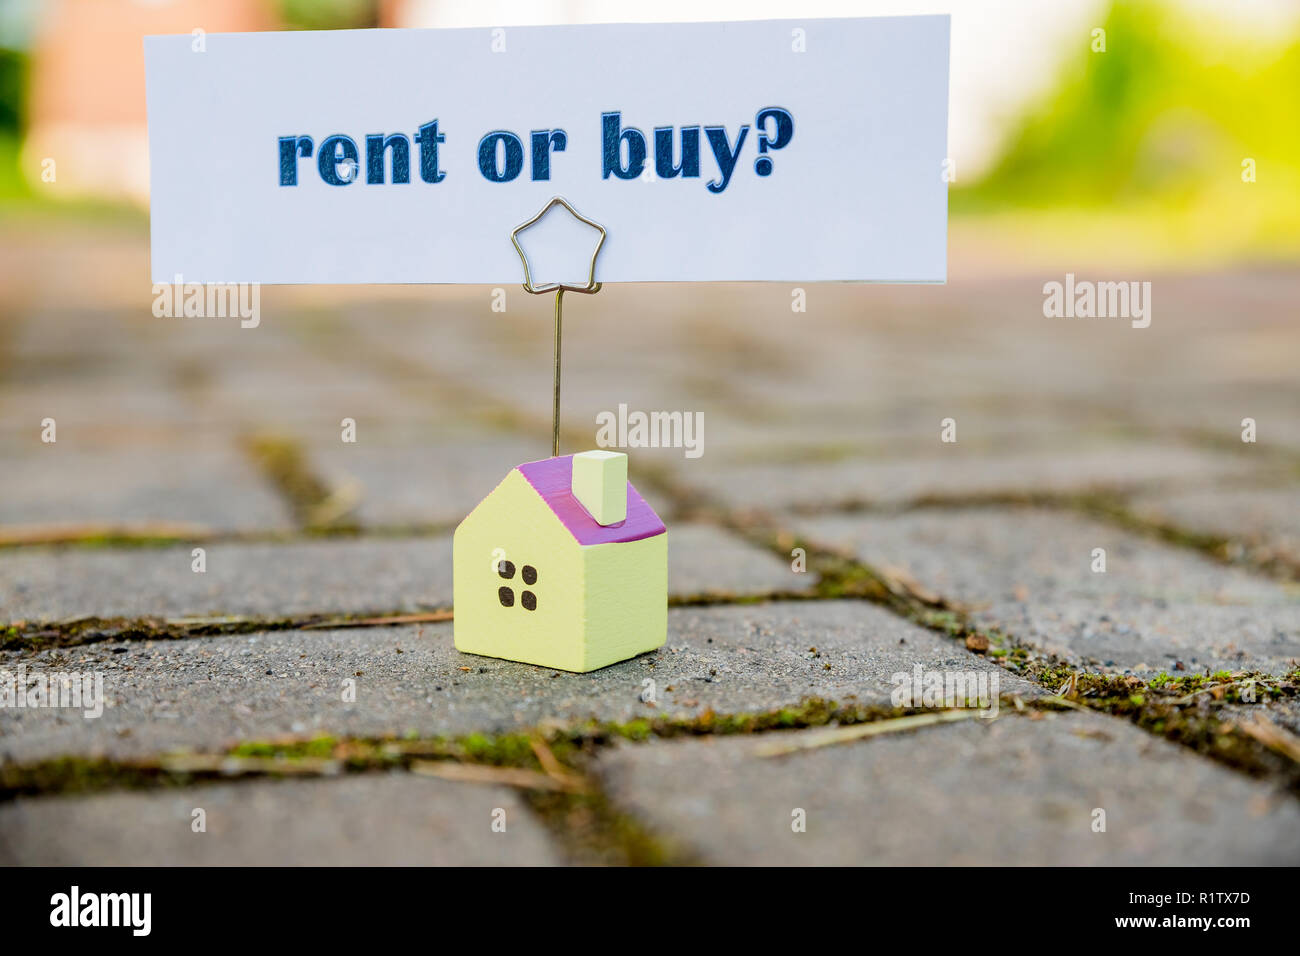 Buy or rent property concept. new House as wish .Text message Buy or rent with wooden small house. Business concept.difficult decision and choice.Copy space - Stock Image